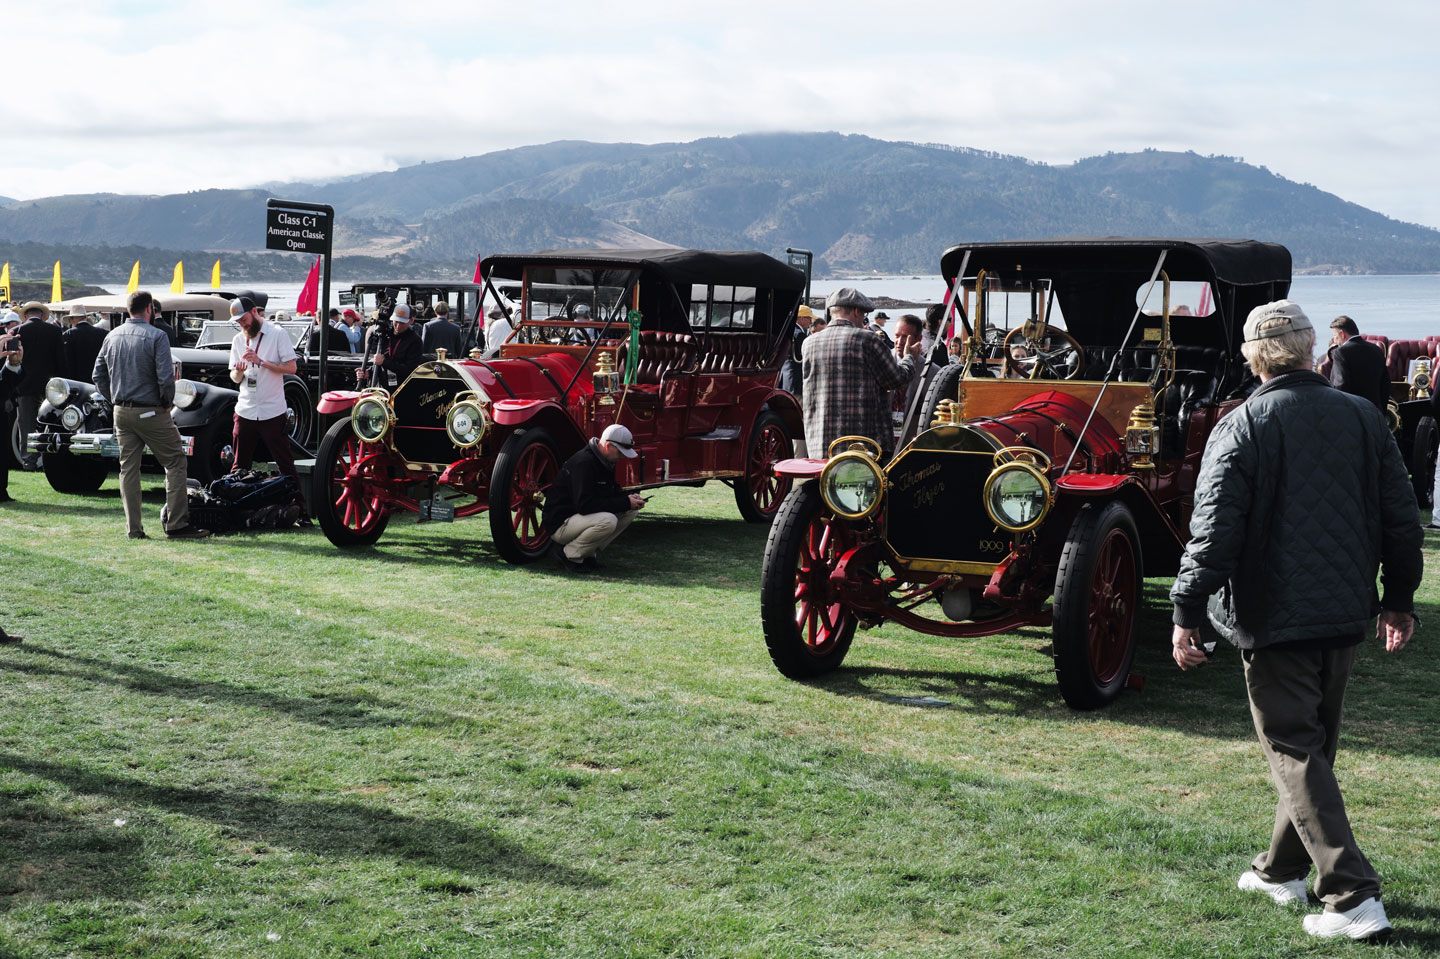 https://cdn2.hubspot.net/hubfs/347760/pebble-beach-concours-delegance-2019.jpg